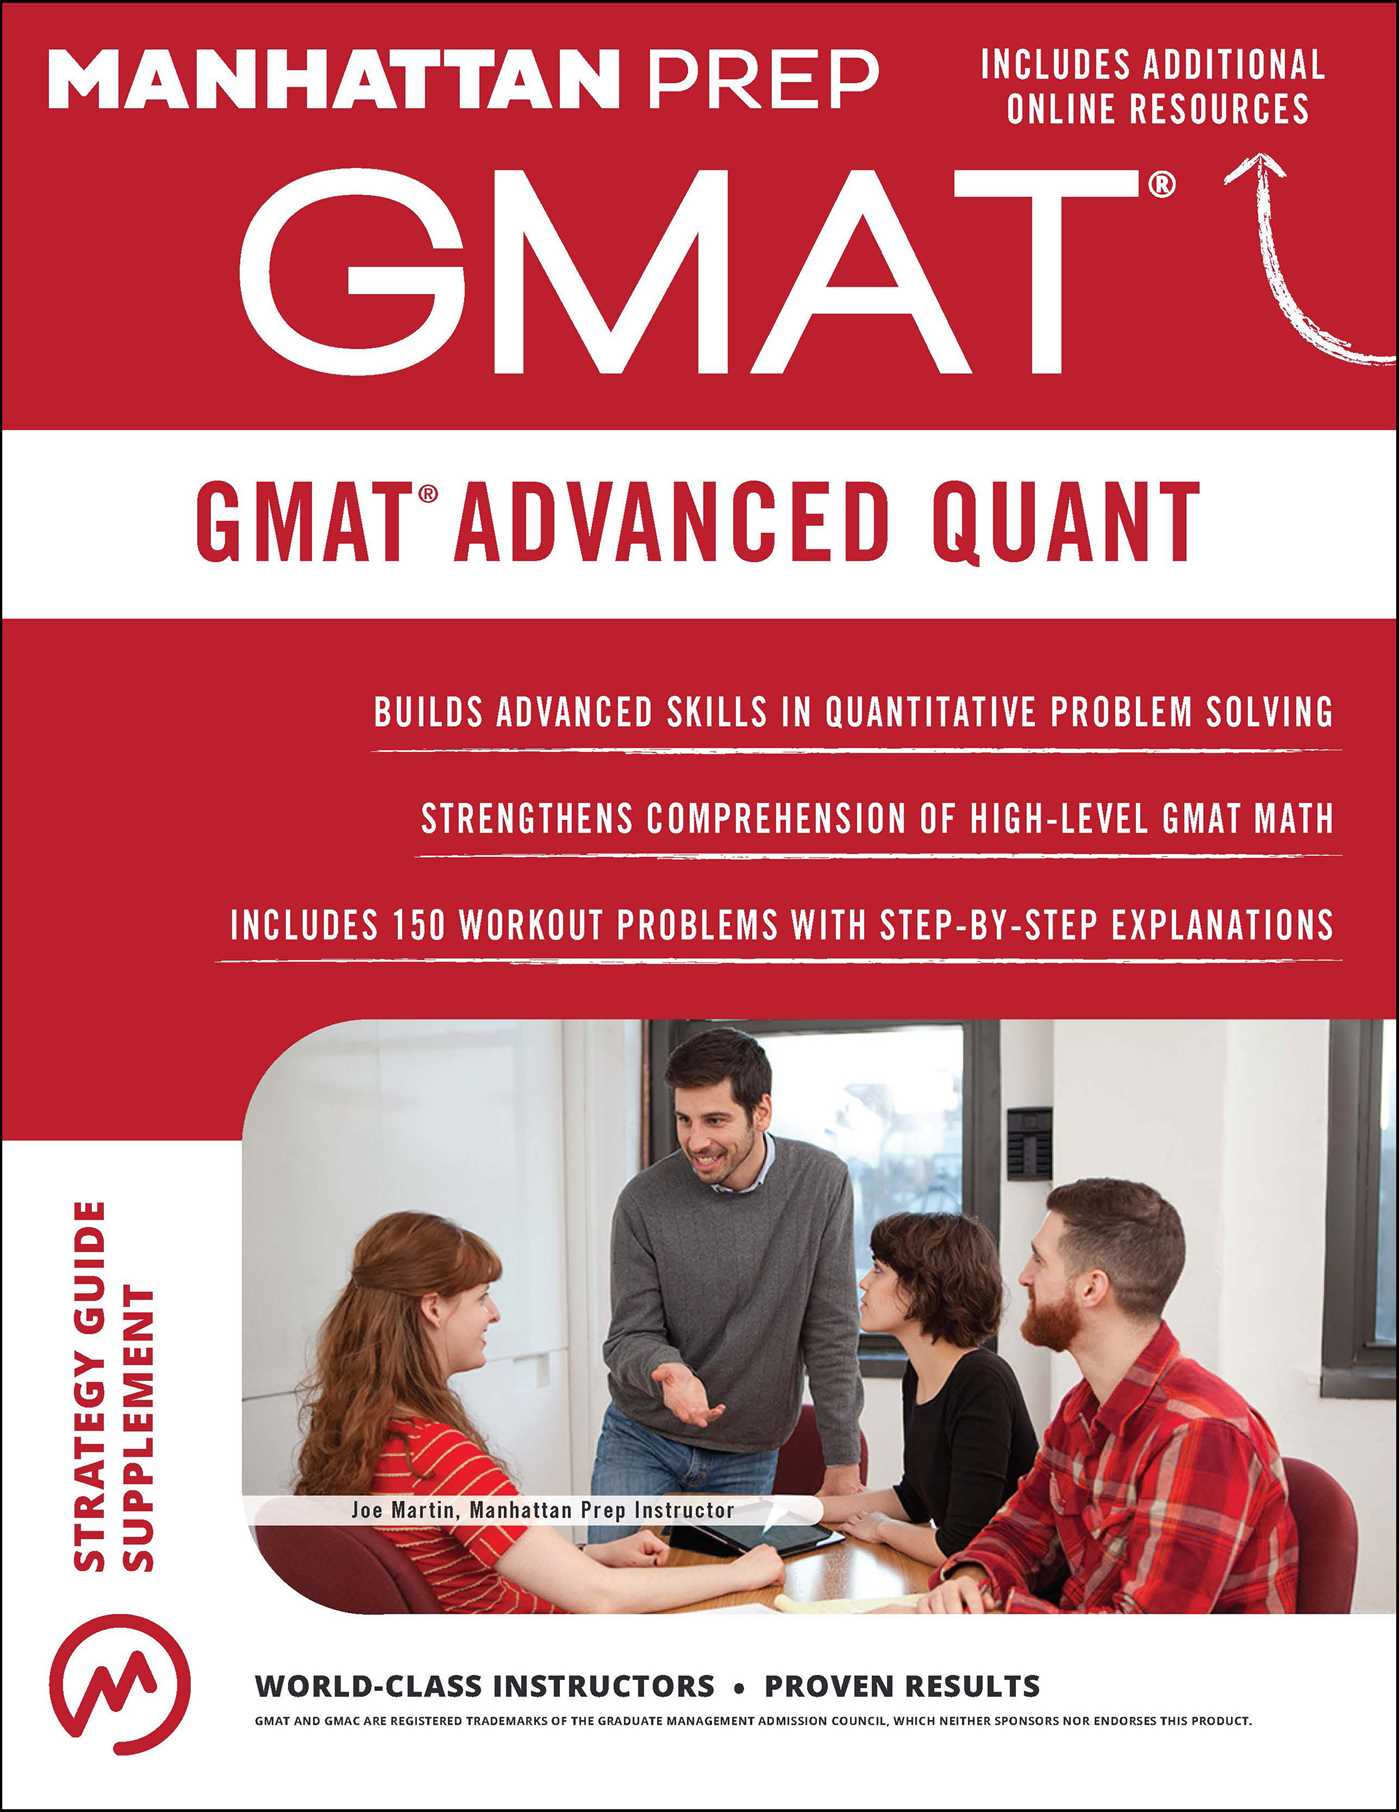 Gmat-advanced-quant-9781941234358_hr